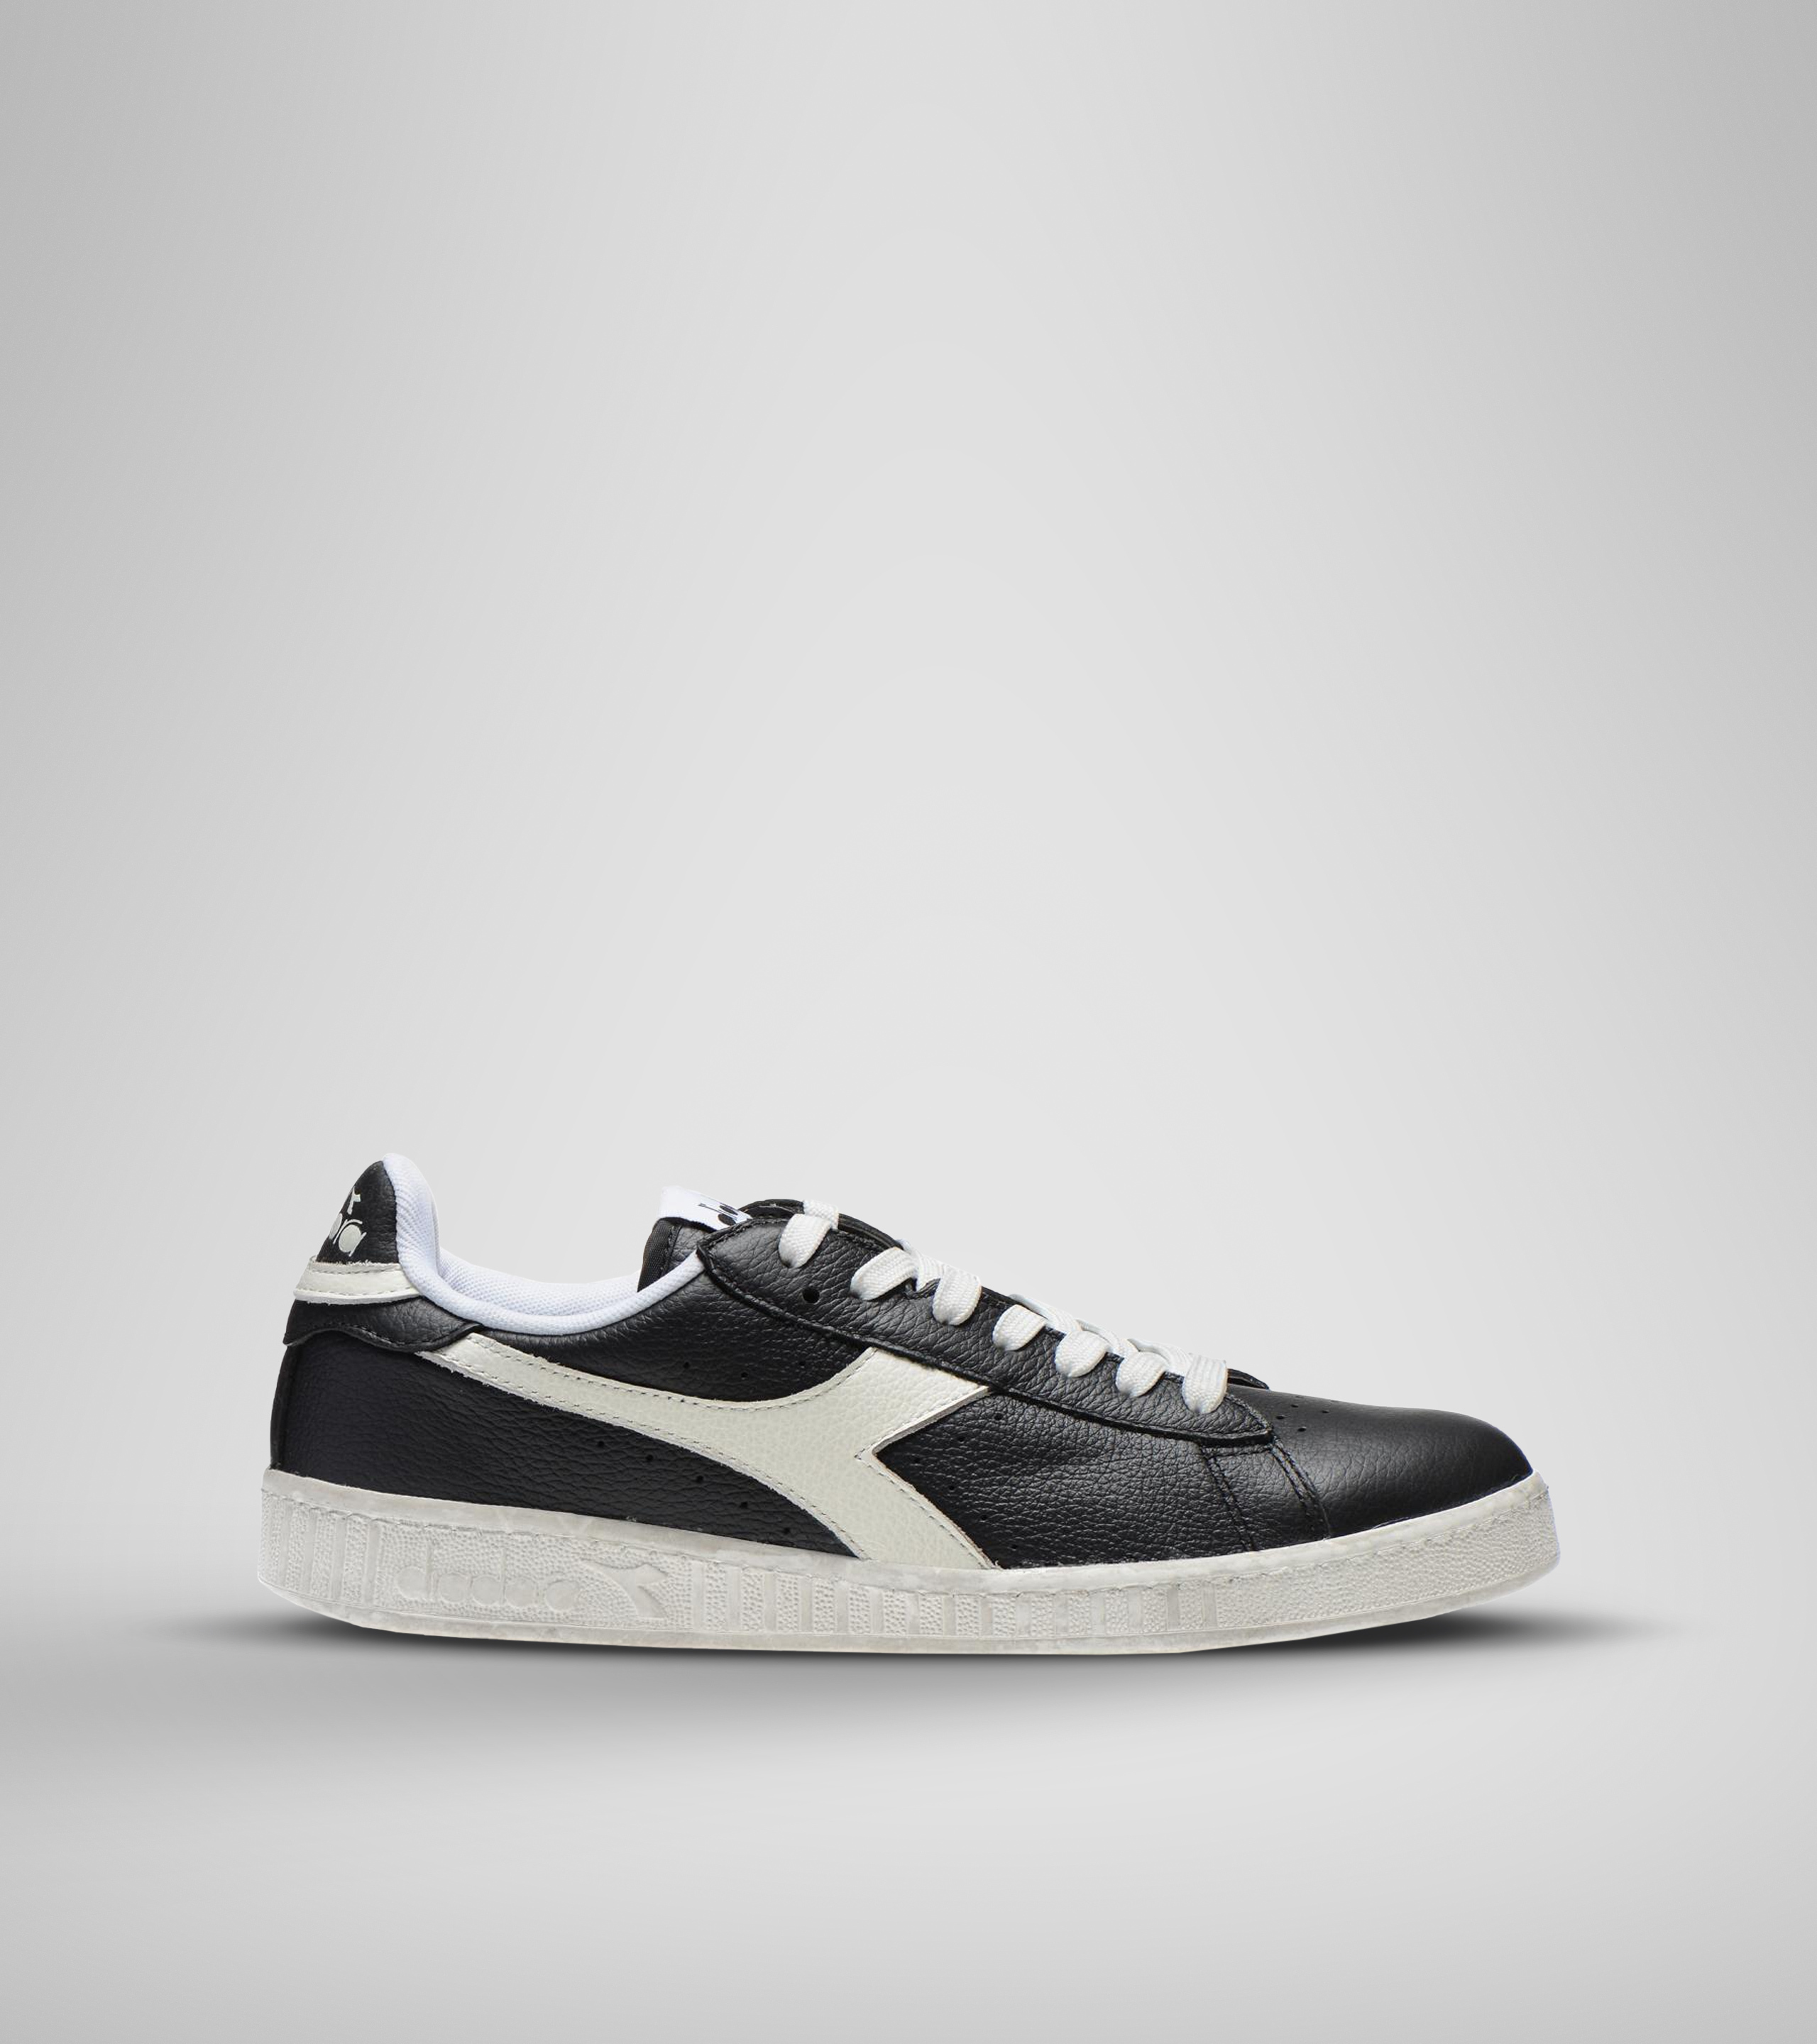 GAME L LOW WAXED, BLACK/WHITE, swatch